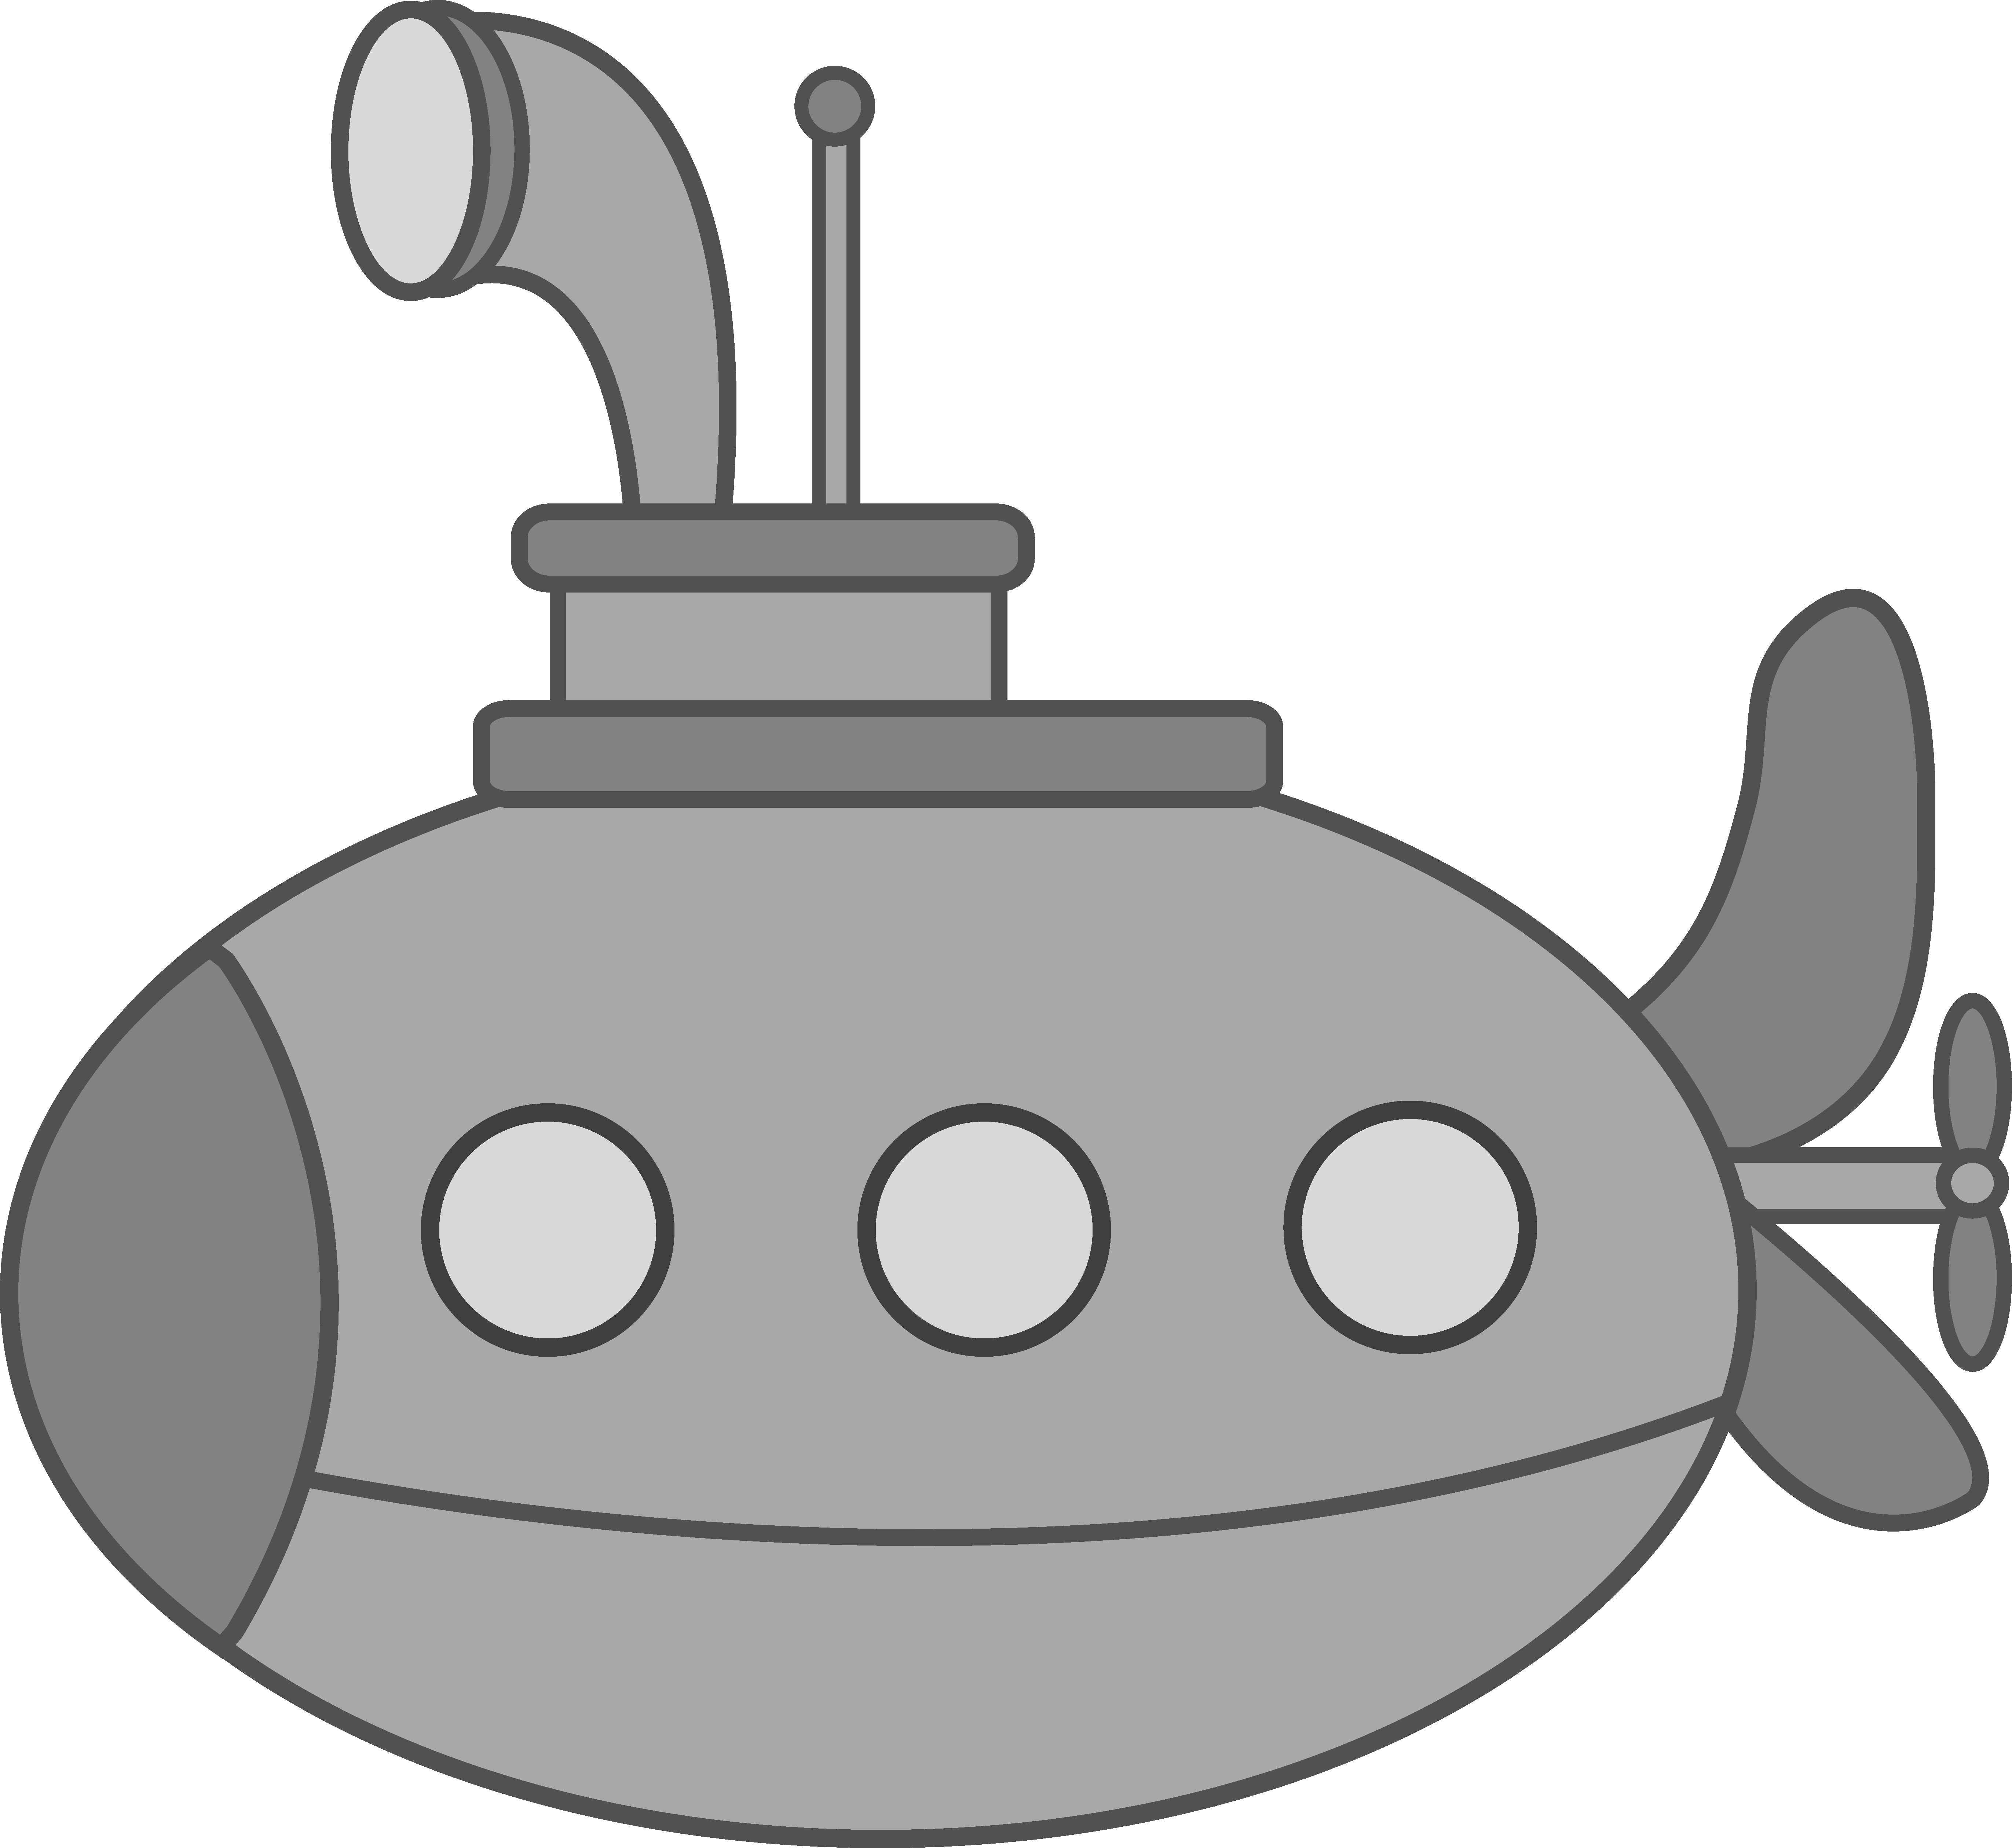 Submarine clipart free download clipart Free Submarine Cliparts, Download Free Clip Art, Free Clip ... clipart